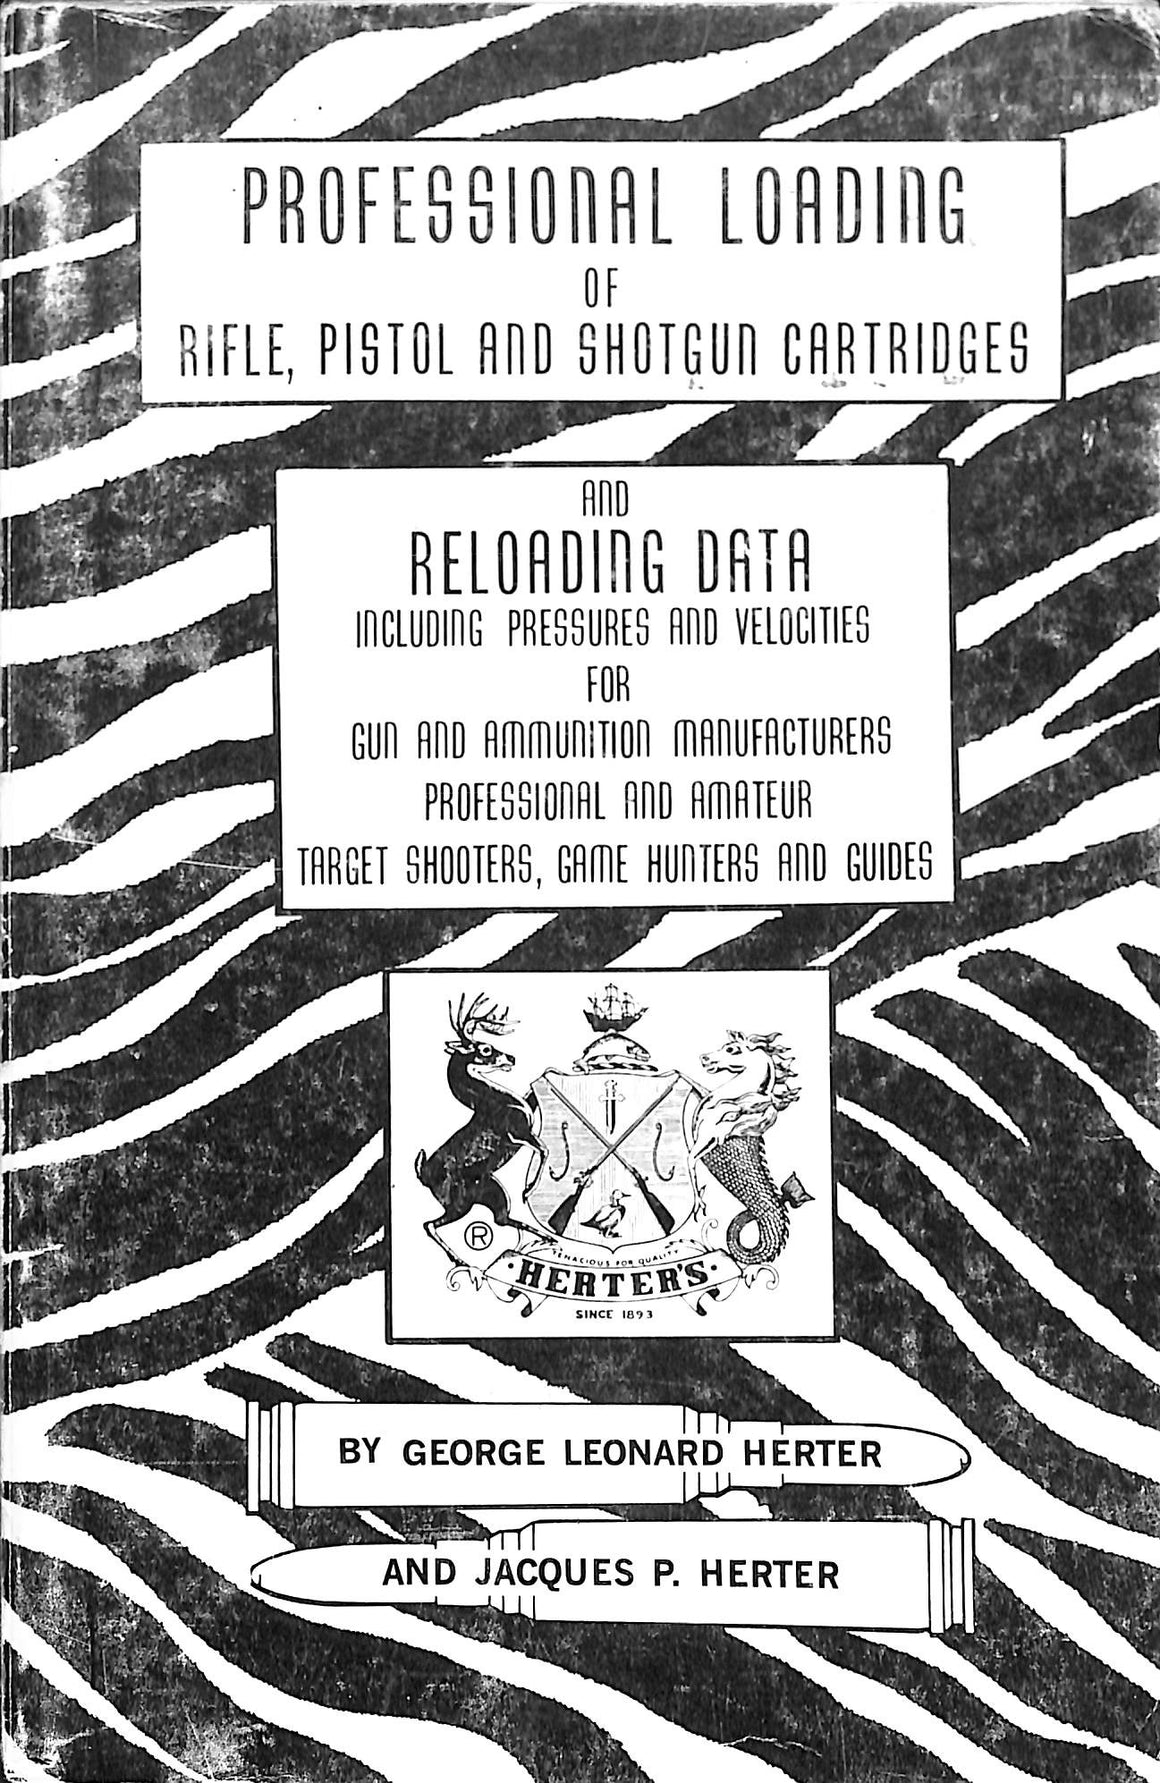 """Professional Loading of Rifle, Pistol And Shotgun Cartridges"" Herter, George Leonard and Herter, Jacques P."